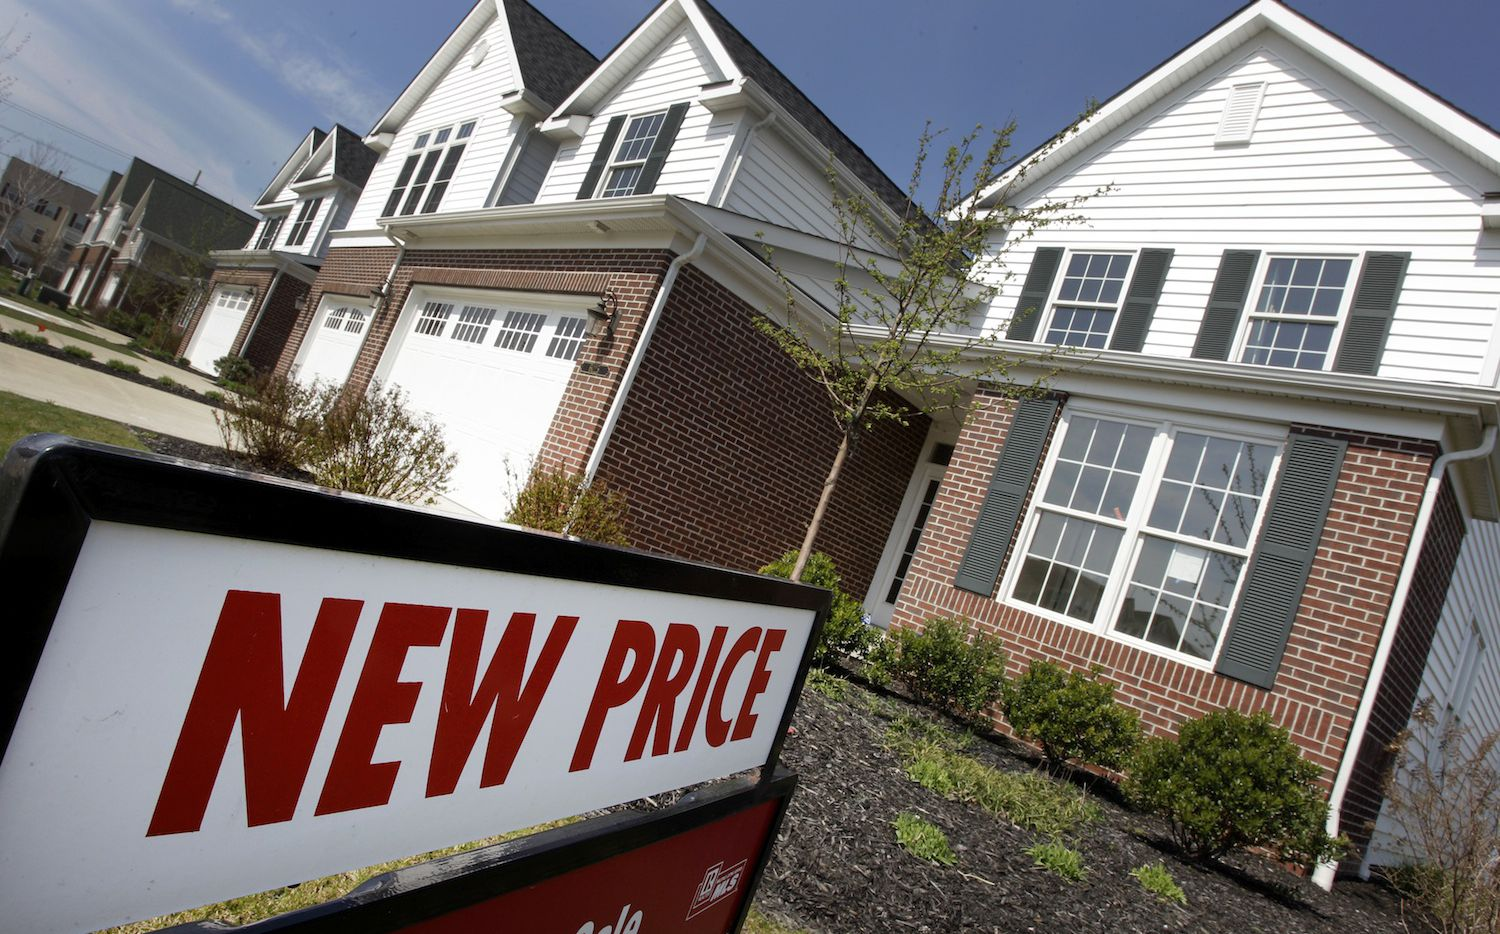 D-FW home prices were up 10.5 percent in June from a year ago, according to Zillow.